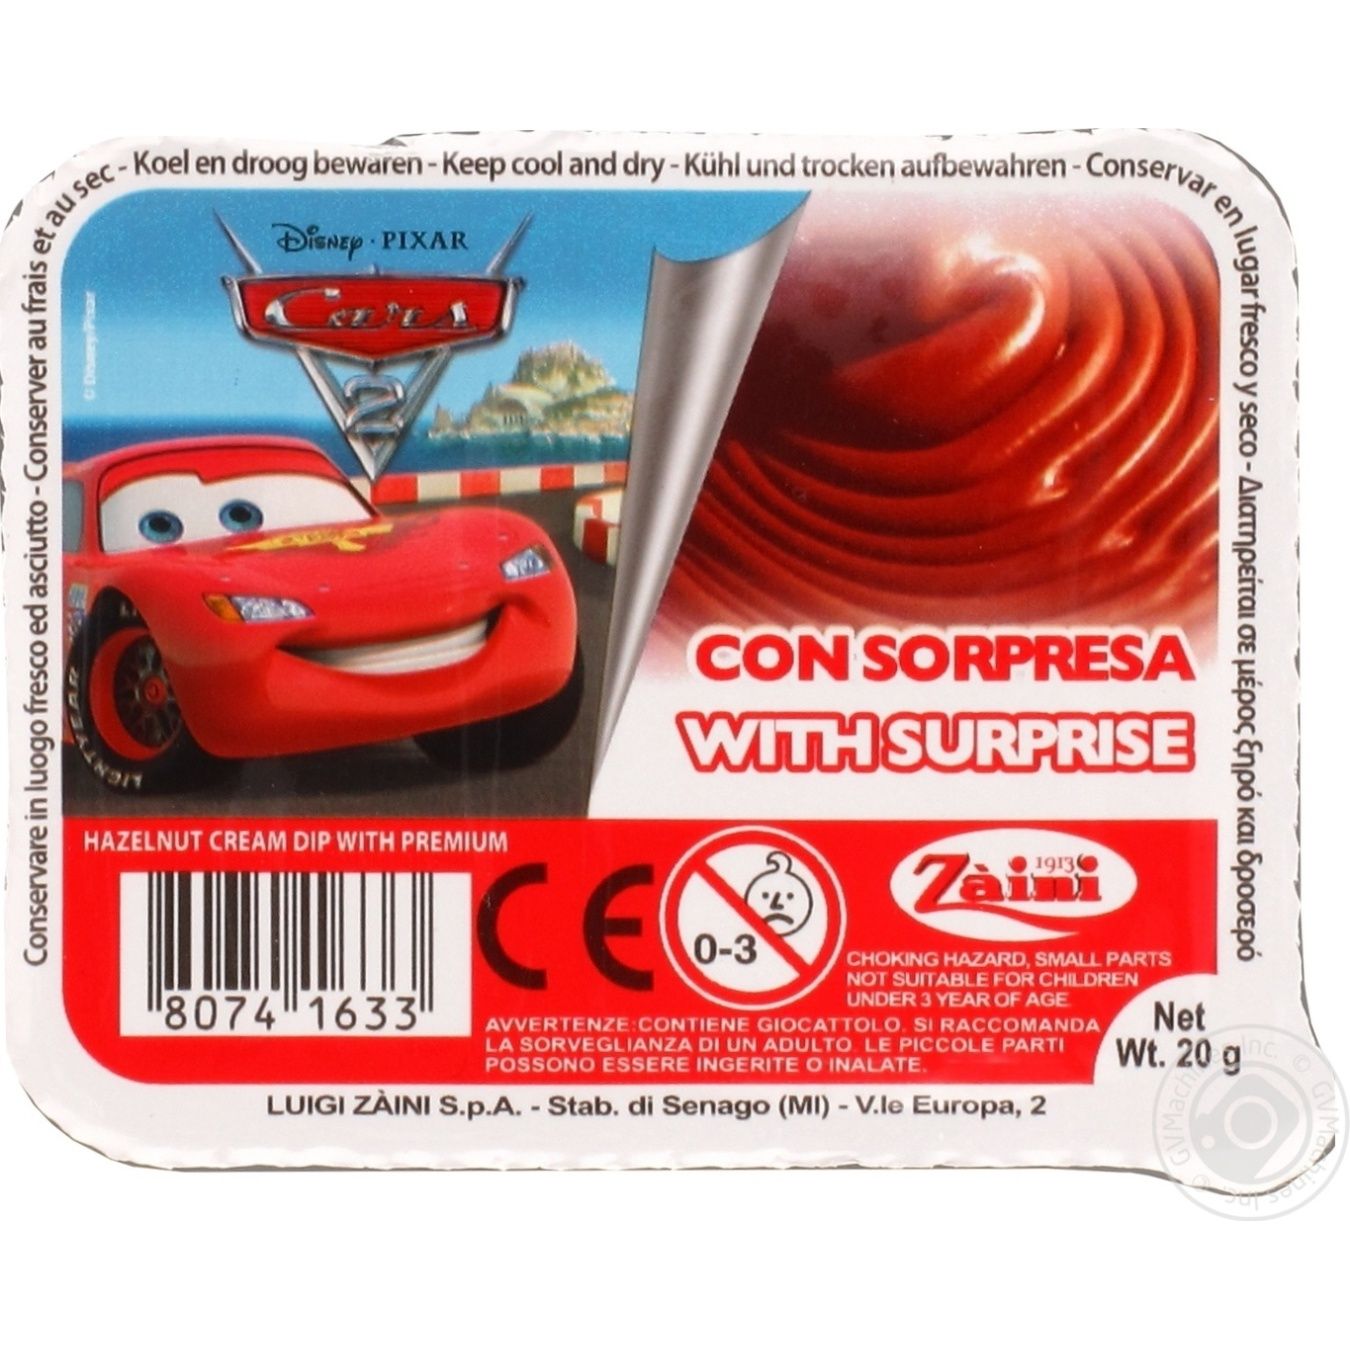 Pasta Disney Disney nuts 20g → Snacks, Sweets and Chips